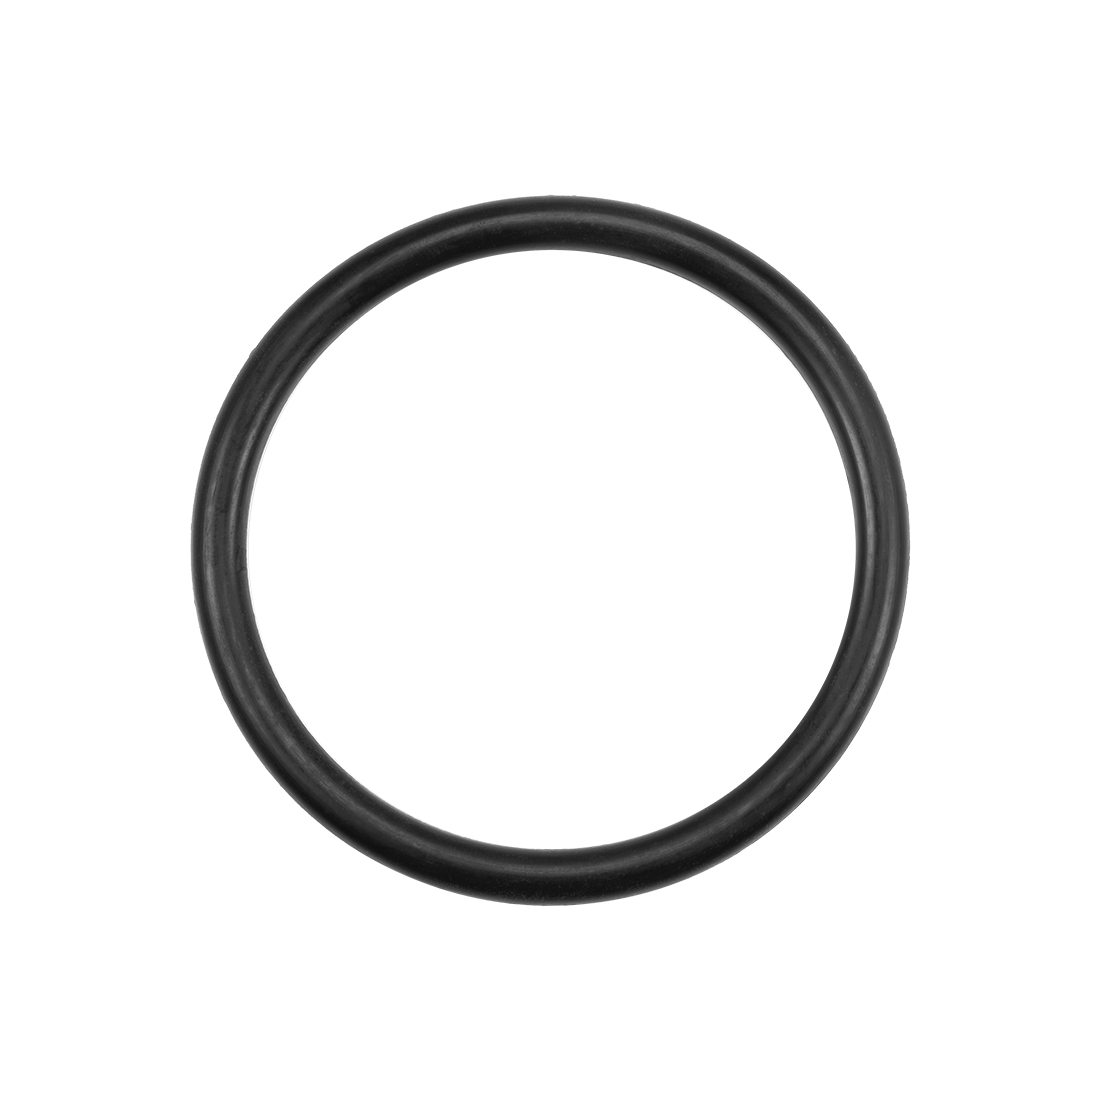 O-Rings Nitrile Rubber 61.6mm x 73mm x 5.7mm Round Seal Gasket